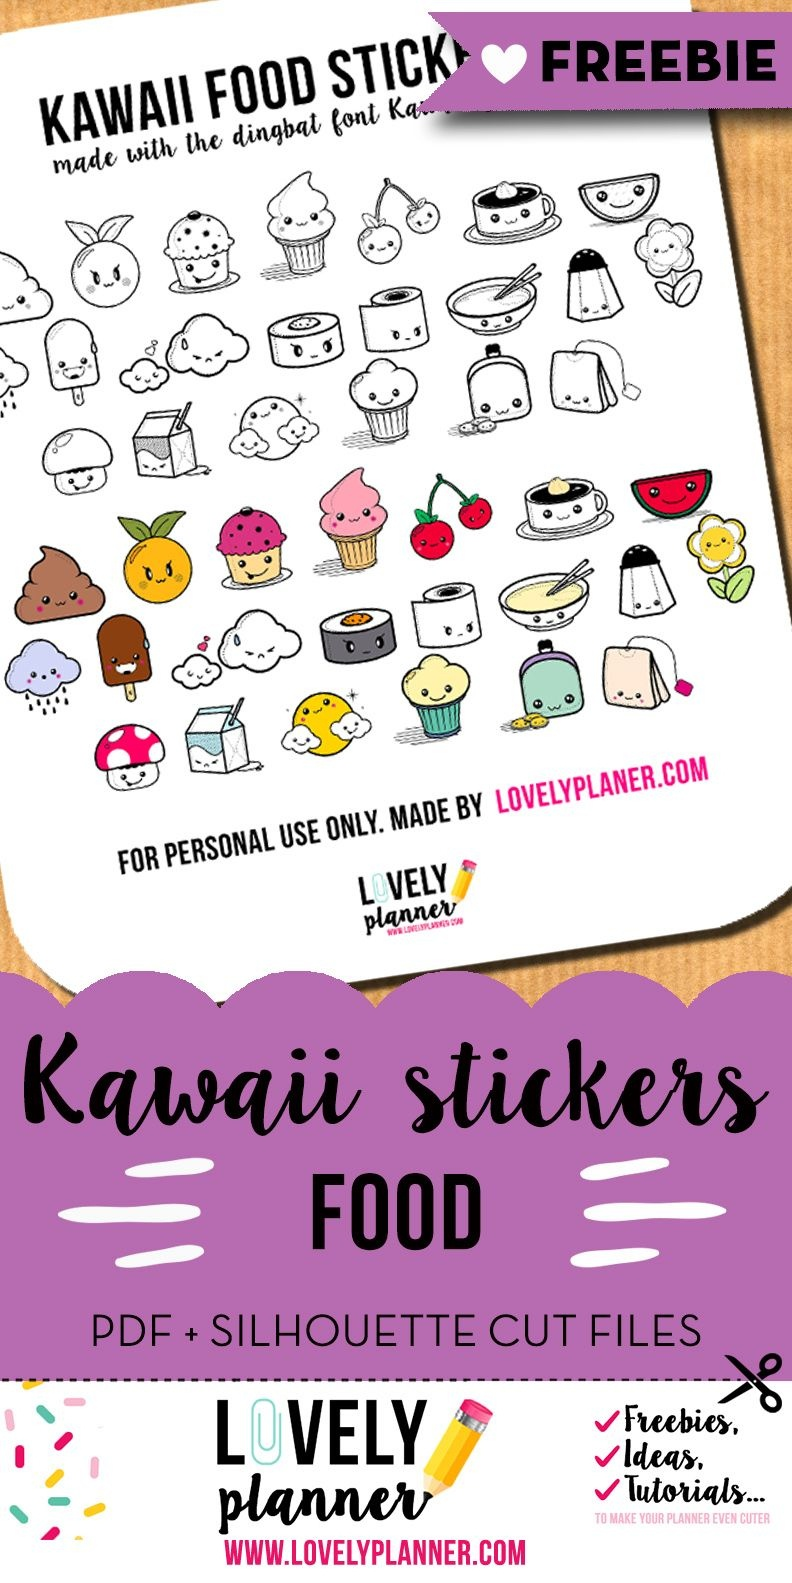 Freebie} Cute Food Stickers For Your Planner | Filofax | Food - Free Printable Kawaii Stickers